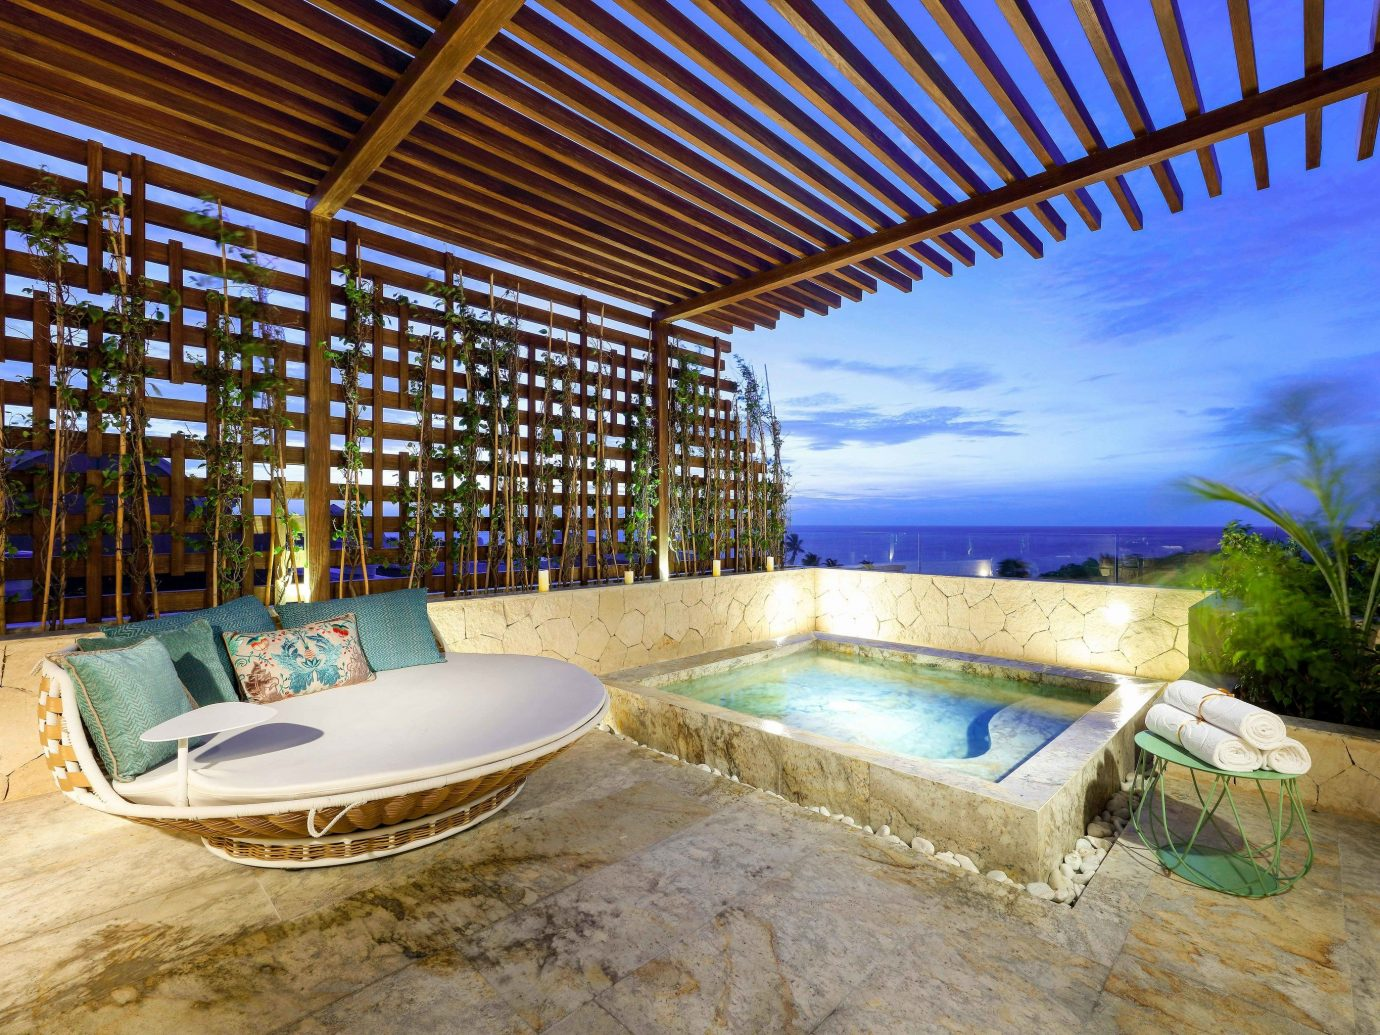 All-inclusive All-Inclusive Resorts Mexico Riviera Maya, Mexico property swimming pool estate Resort real estate Villa leisure house vacation resort town amenity penthouse apartment